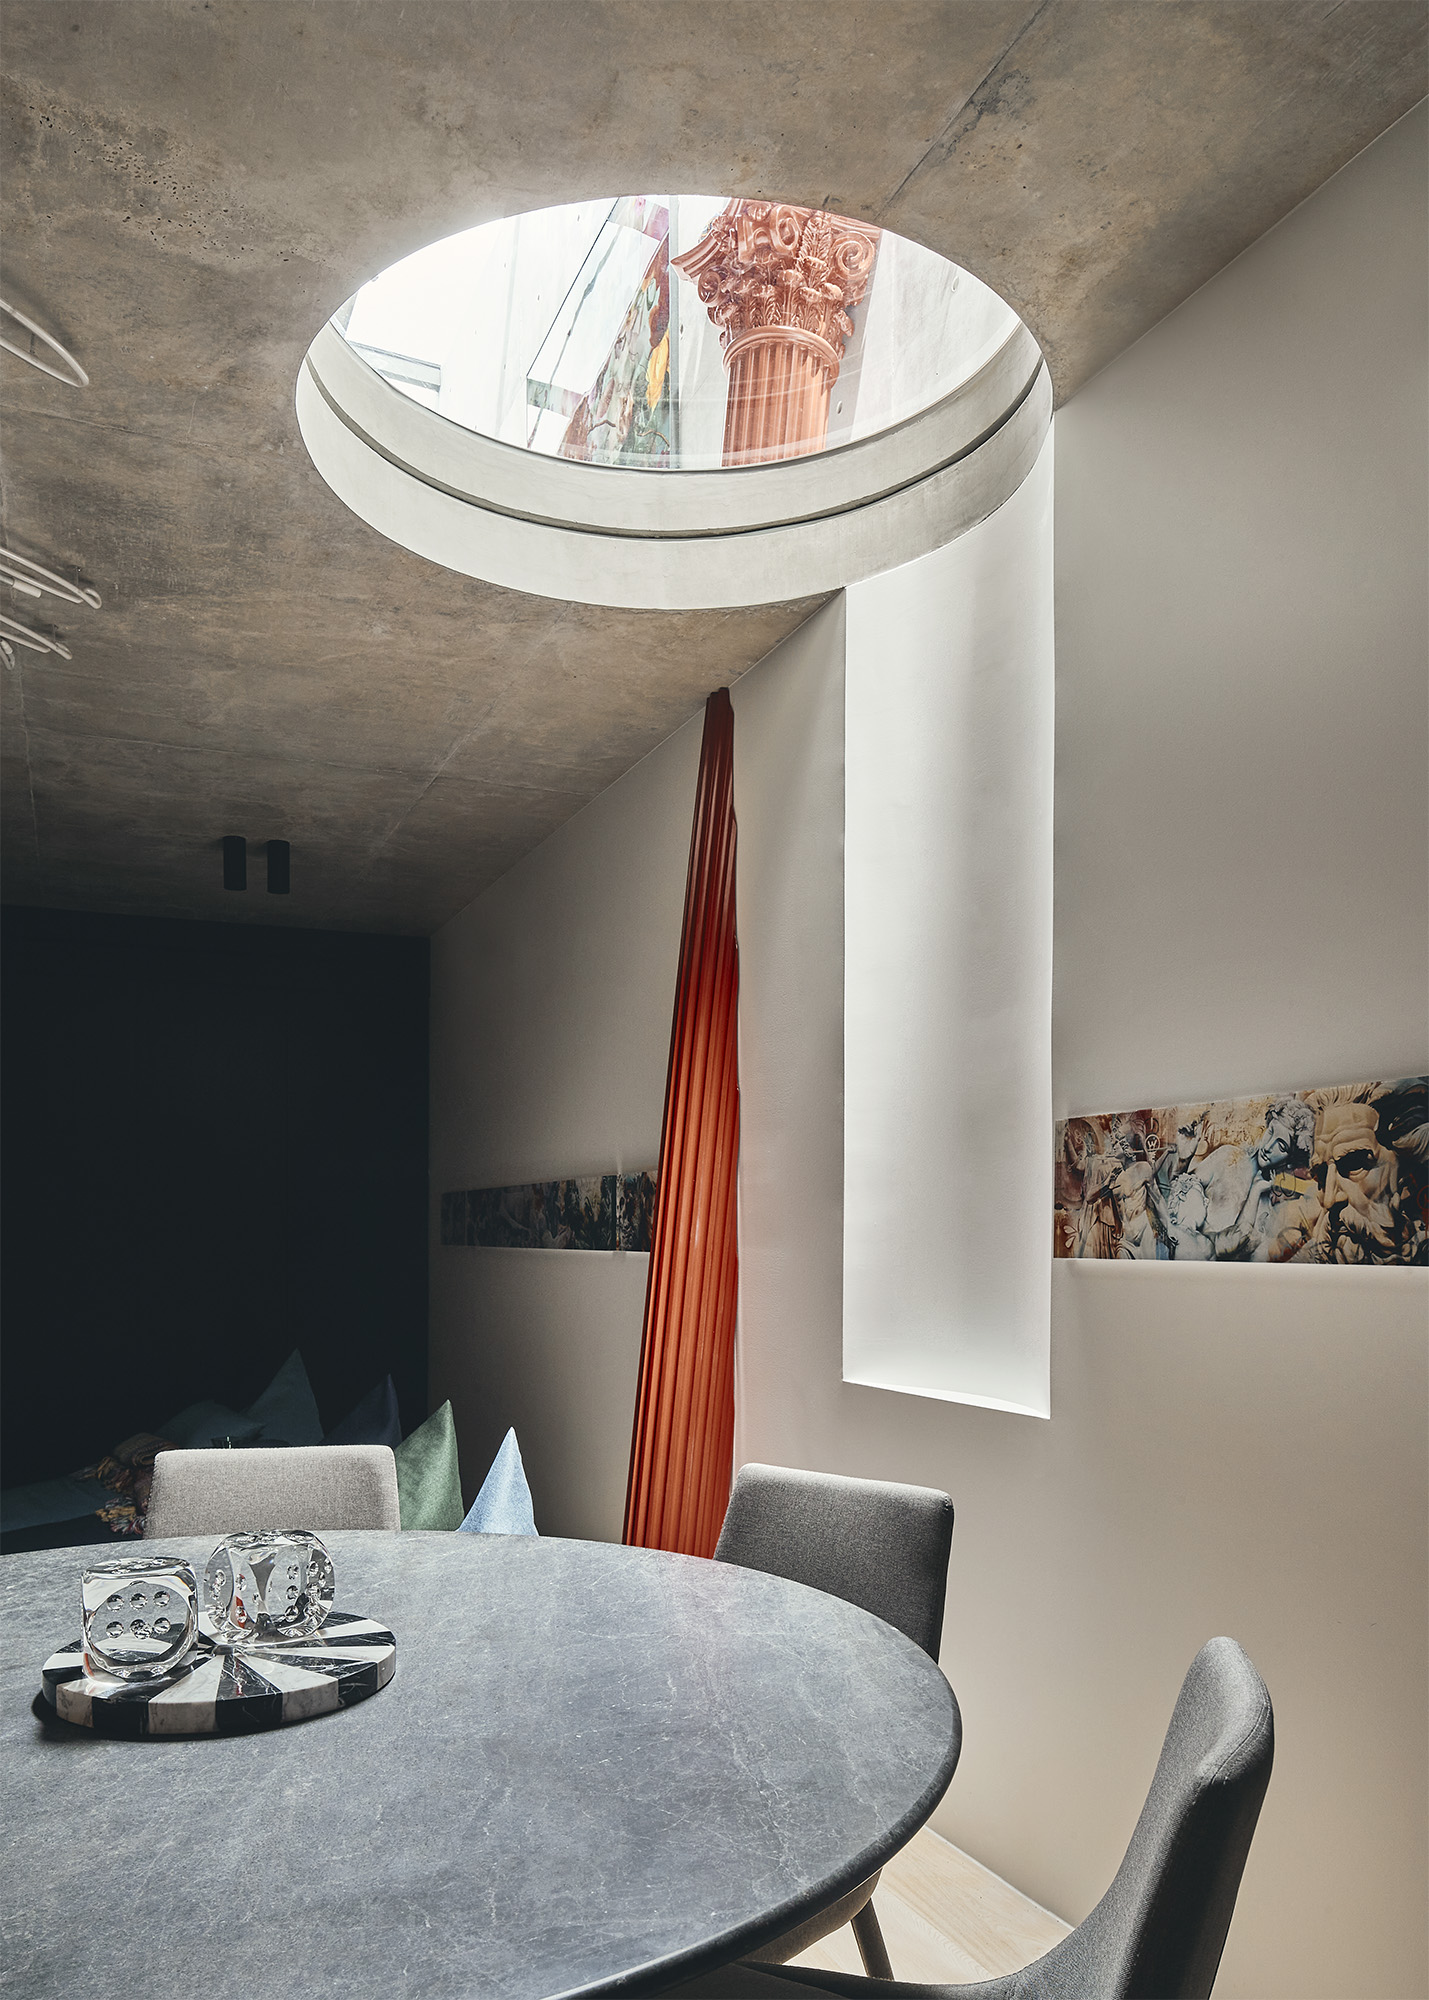 circular skylight in the ceiling